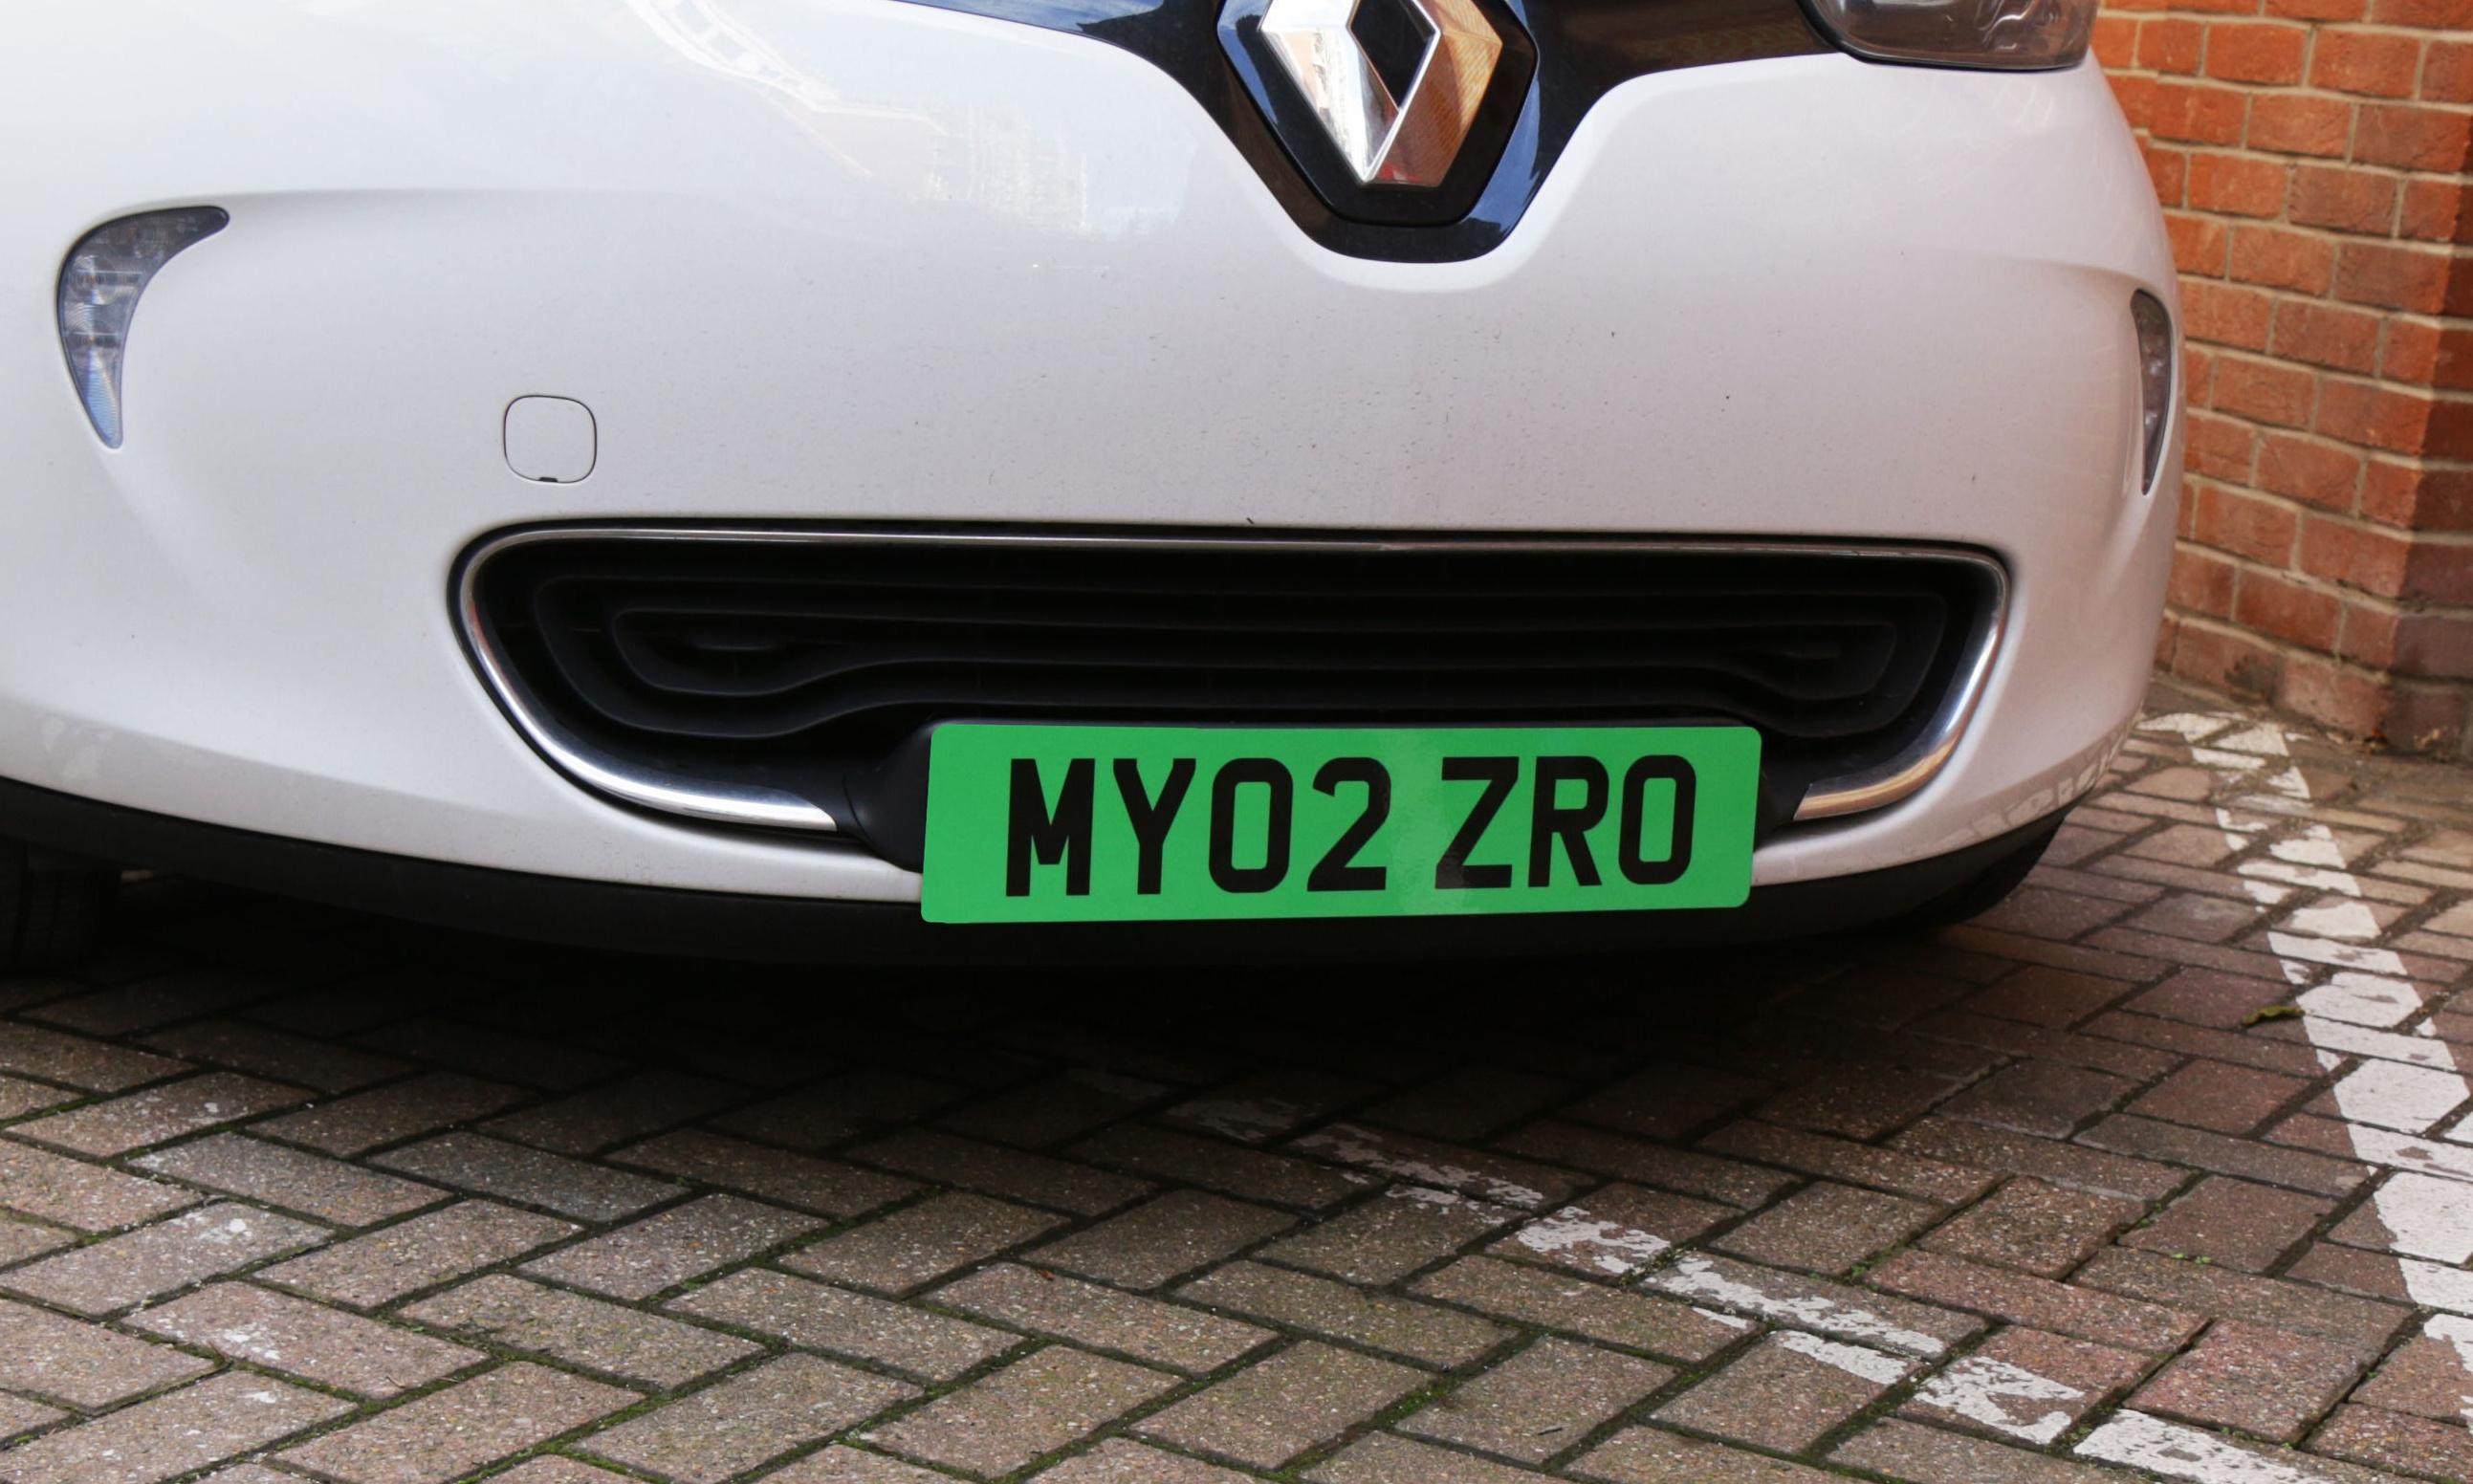 Electric cars to get green number plates under government plan